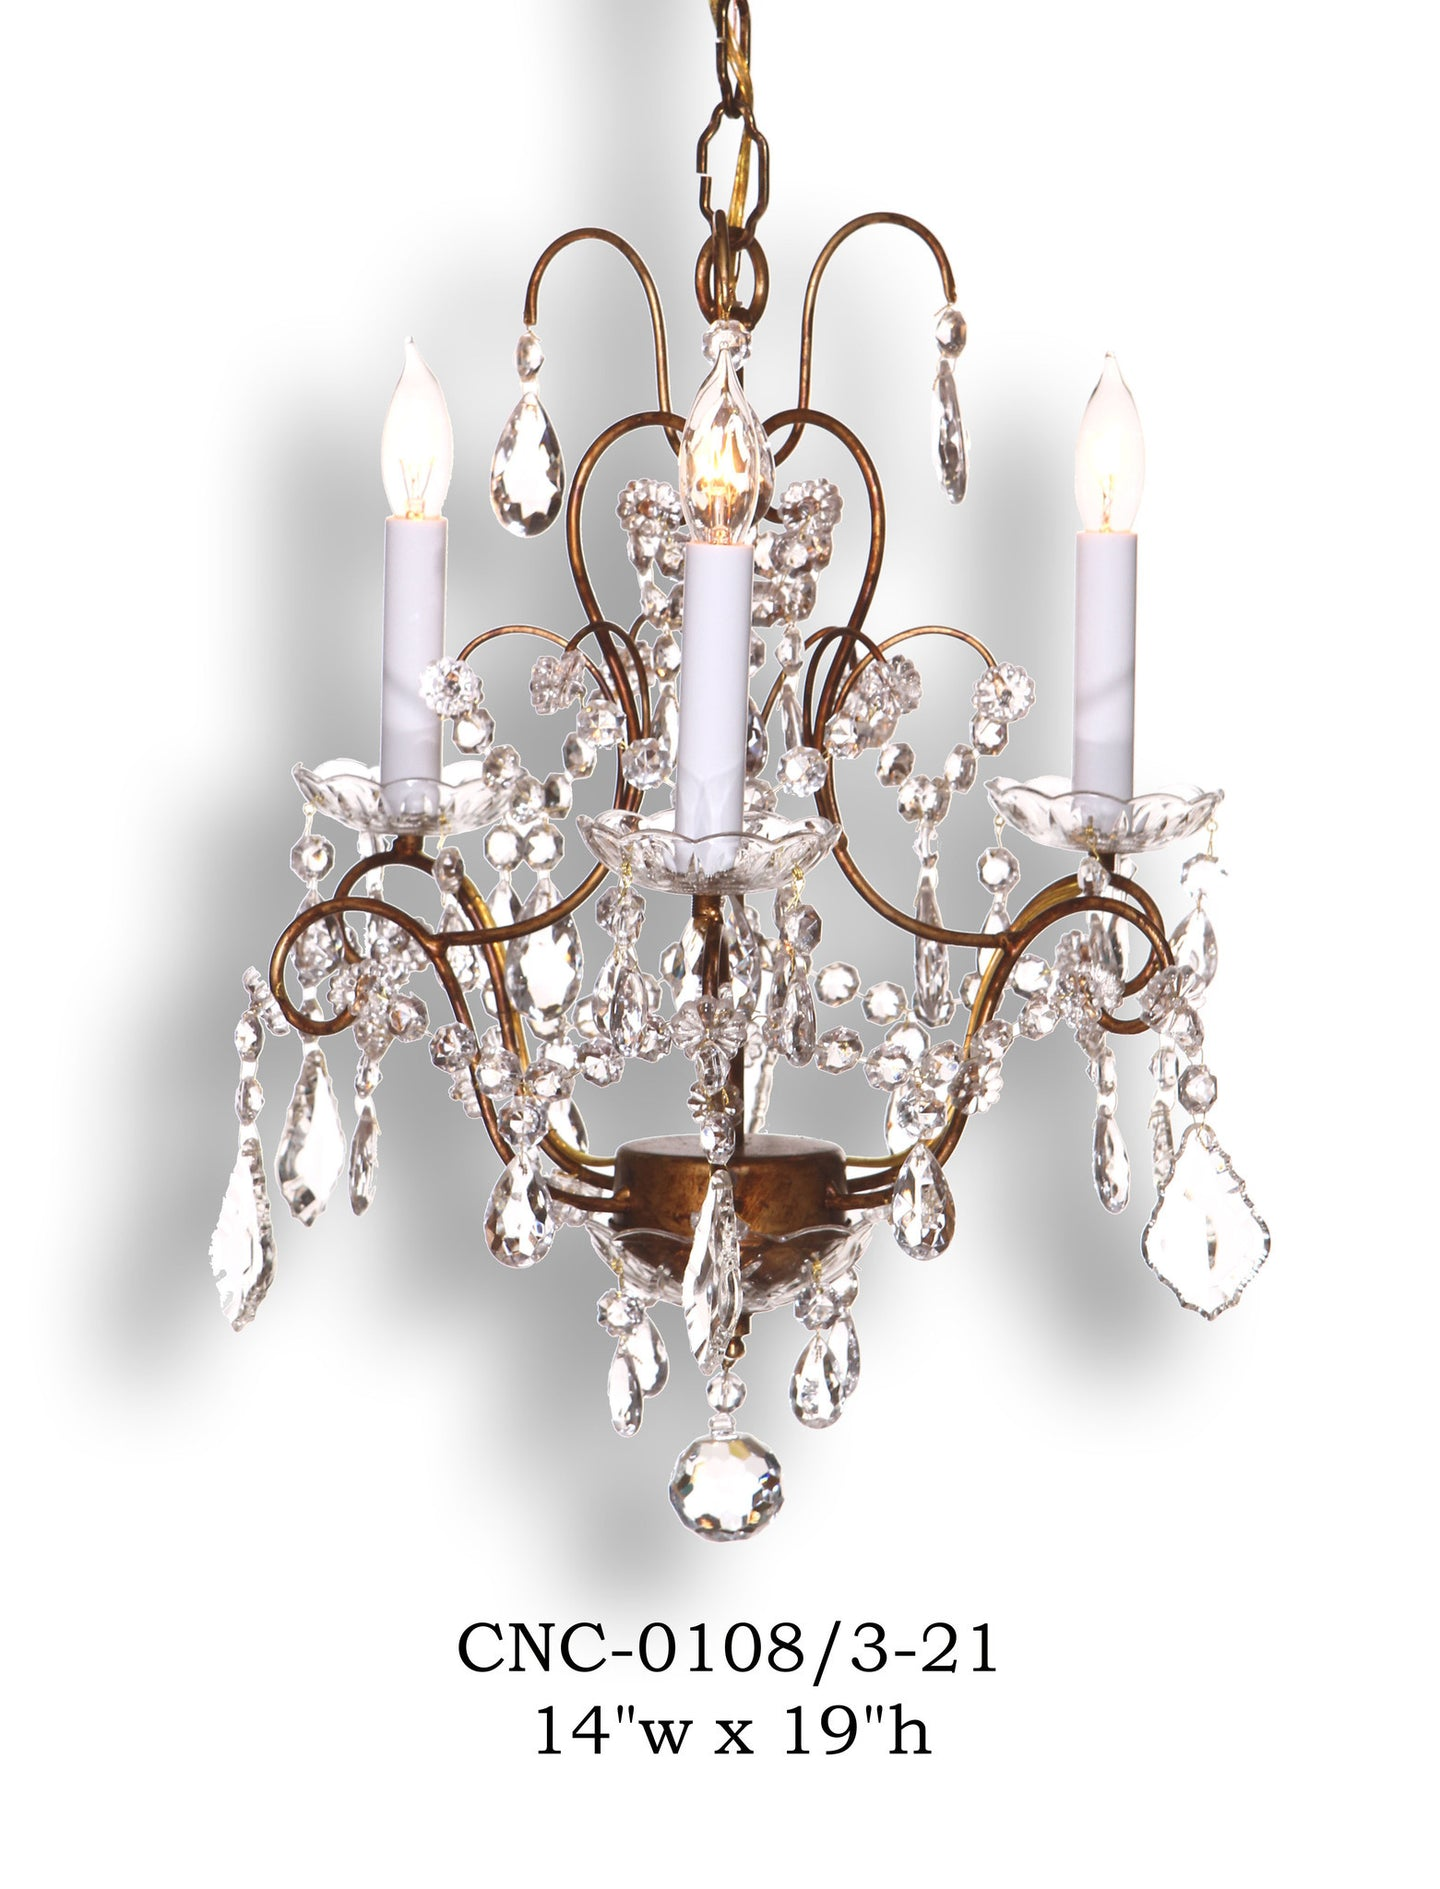 Crystal Chandelier - CNC-0108/3-21Chandelier - Graham's Lighting Memphis, TN